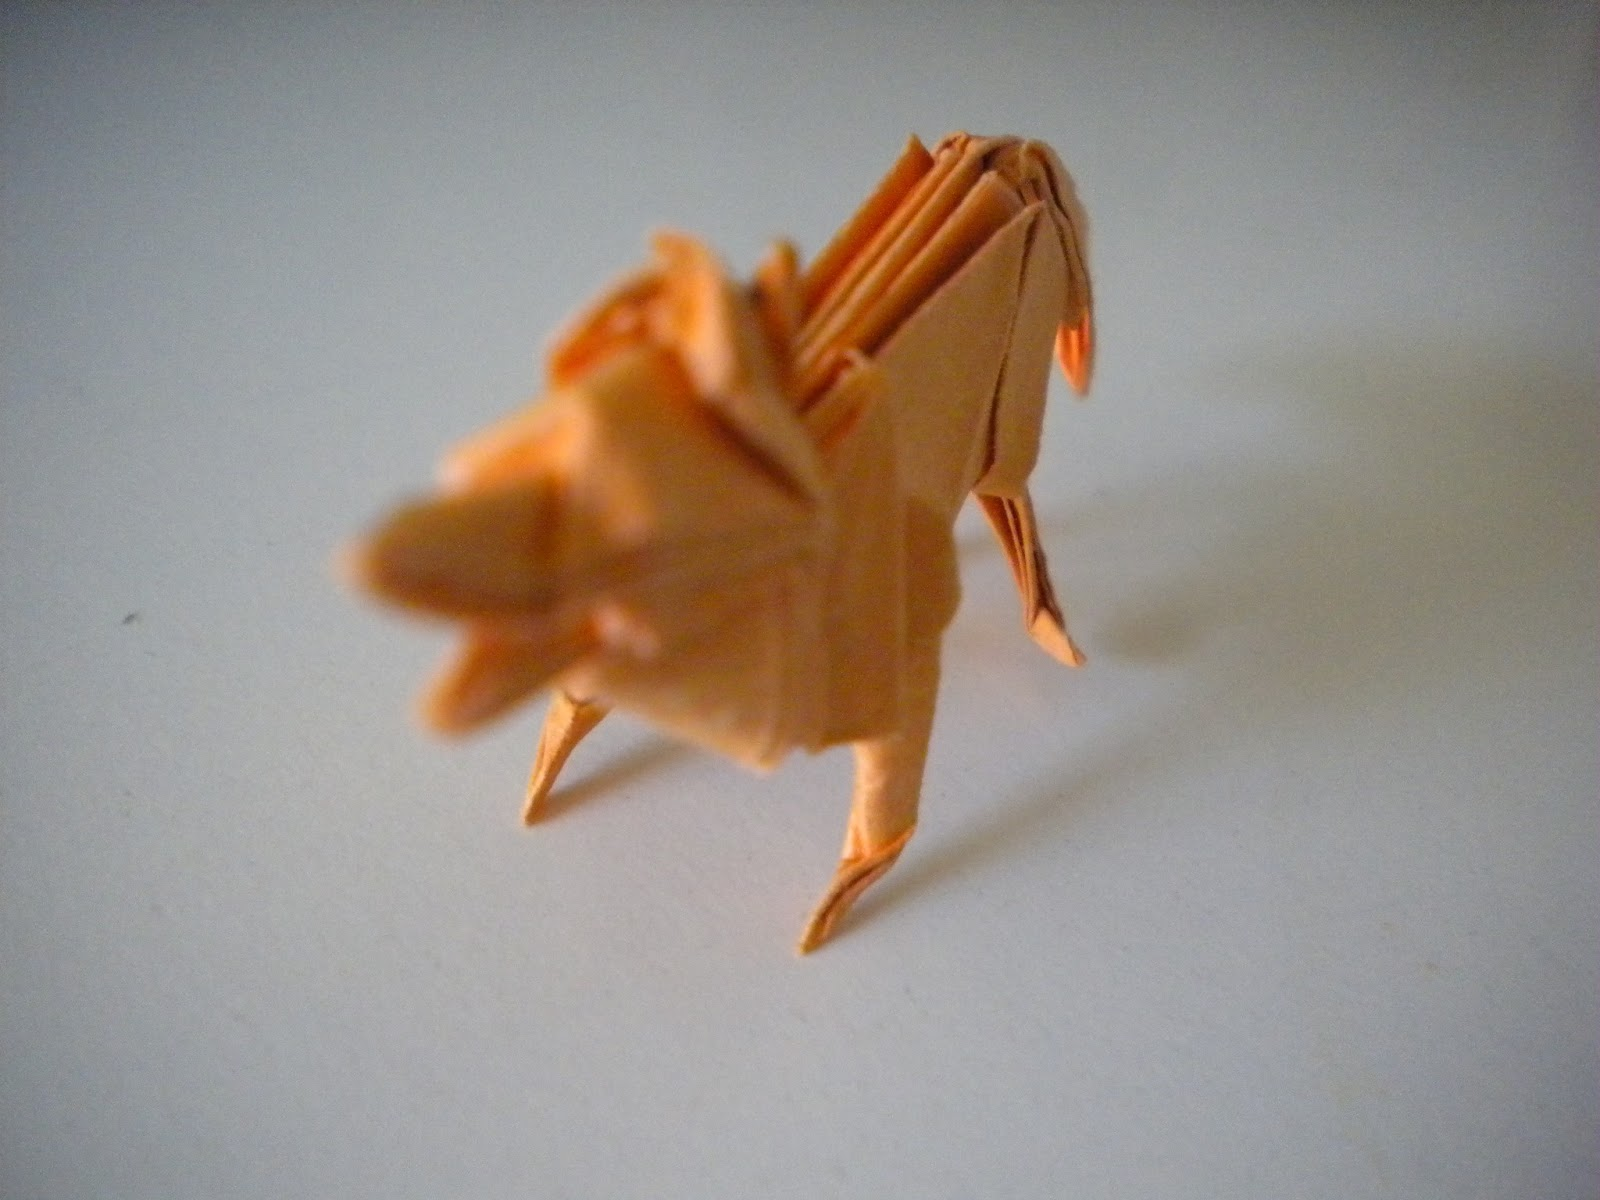 Curious Charisma Advanced Origami Fox Instructions Diagram Of The Squirrel This Brown Bear Possibly A Native Californian Like Myself Turned Out Much Cuter Than I Thought It Would From Looking At Book